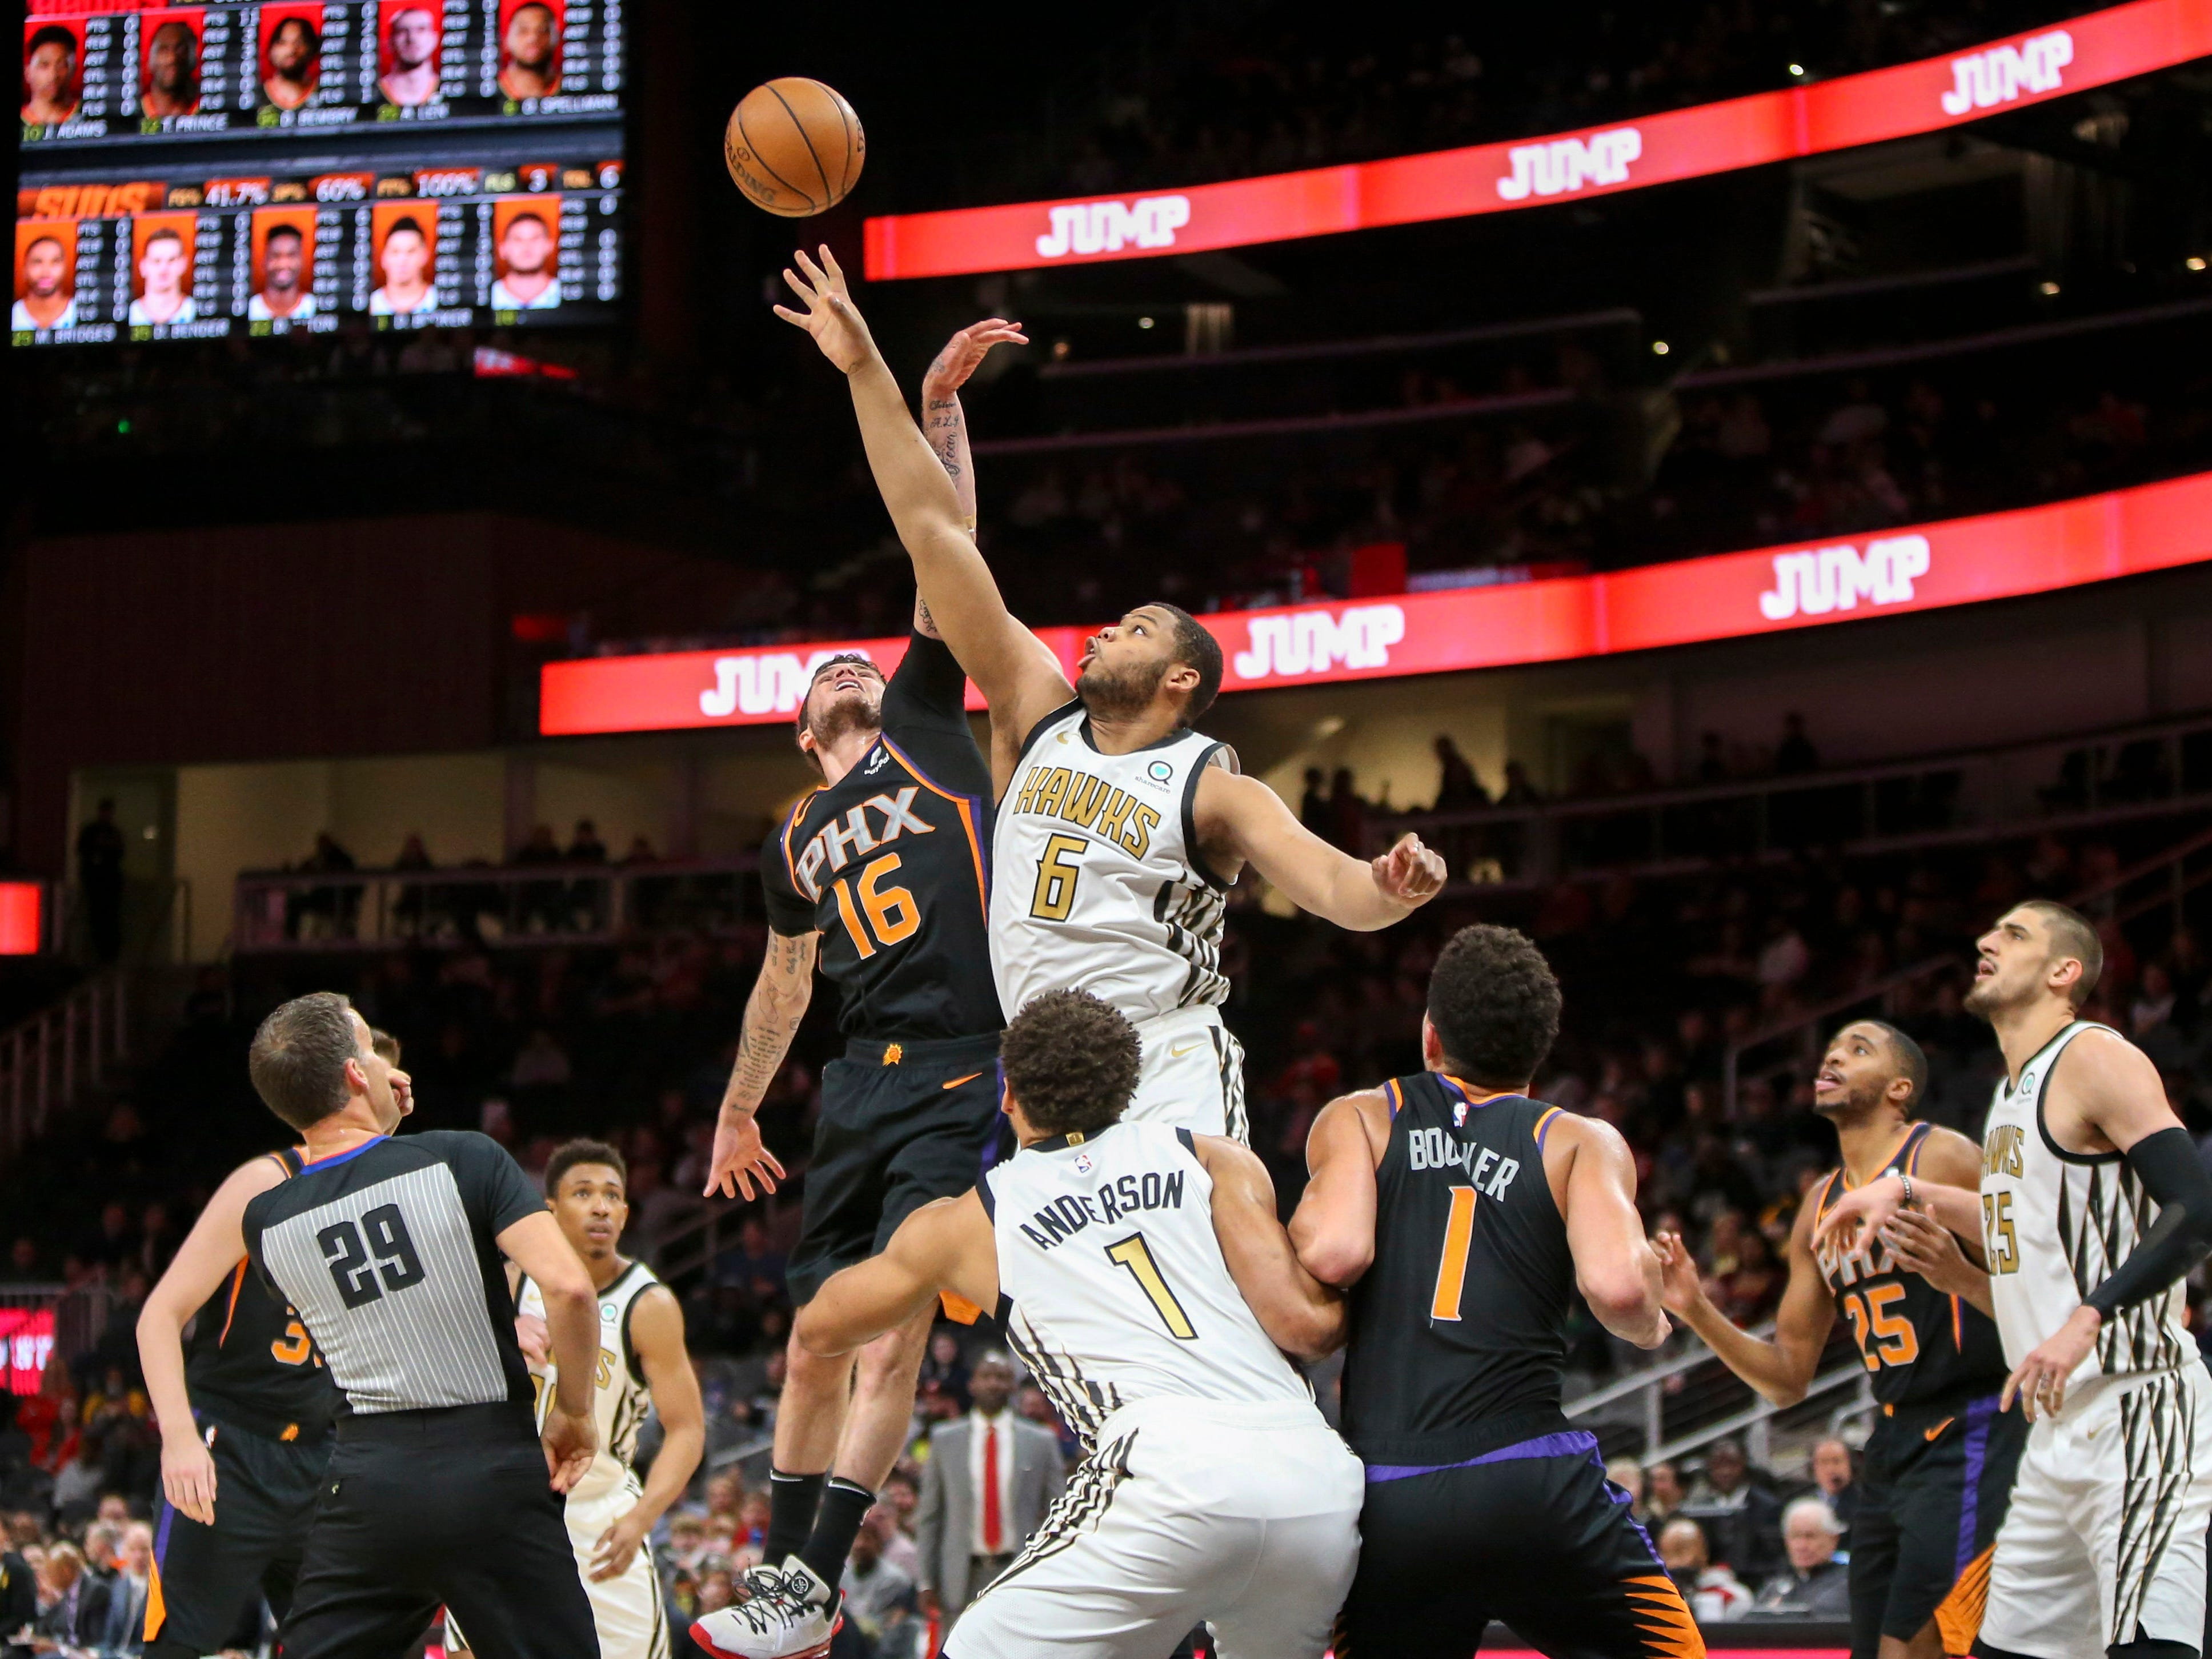 Feb 23, 2019: Atlanta Hawks forward Omari Spellman (6) tips a jump ball over Phoenix Suns guard Tyler Johnson (16) in the first quarter at State Farm Arena.